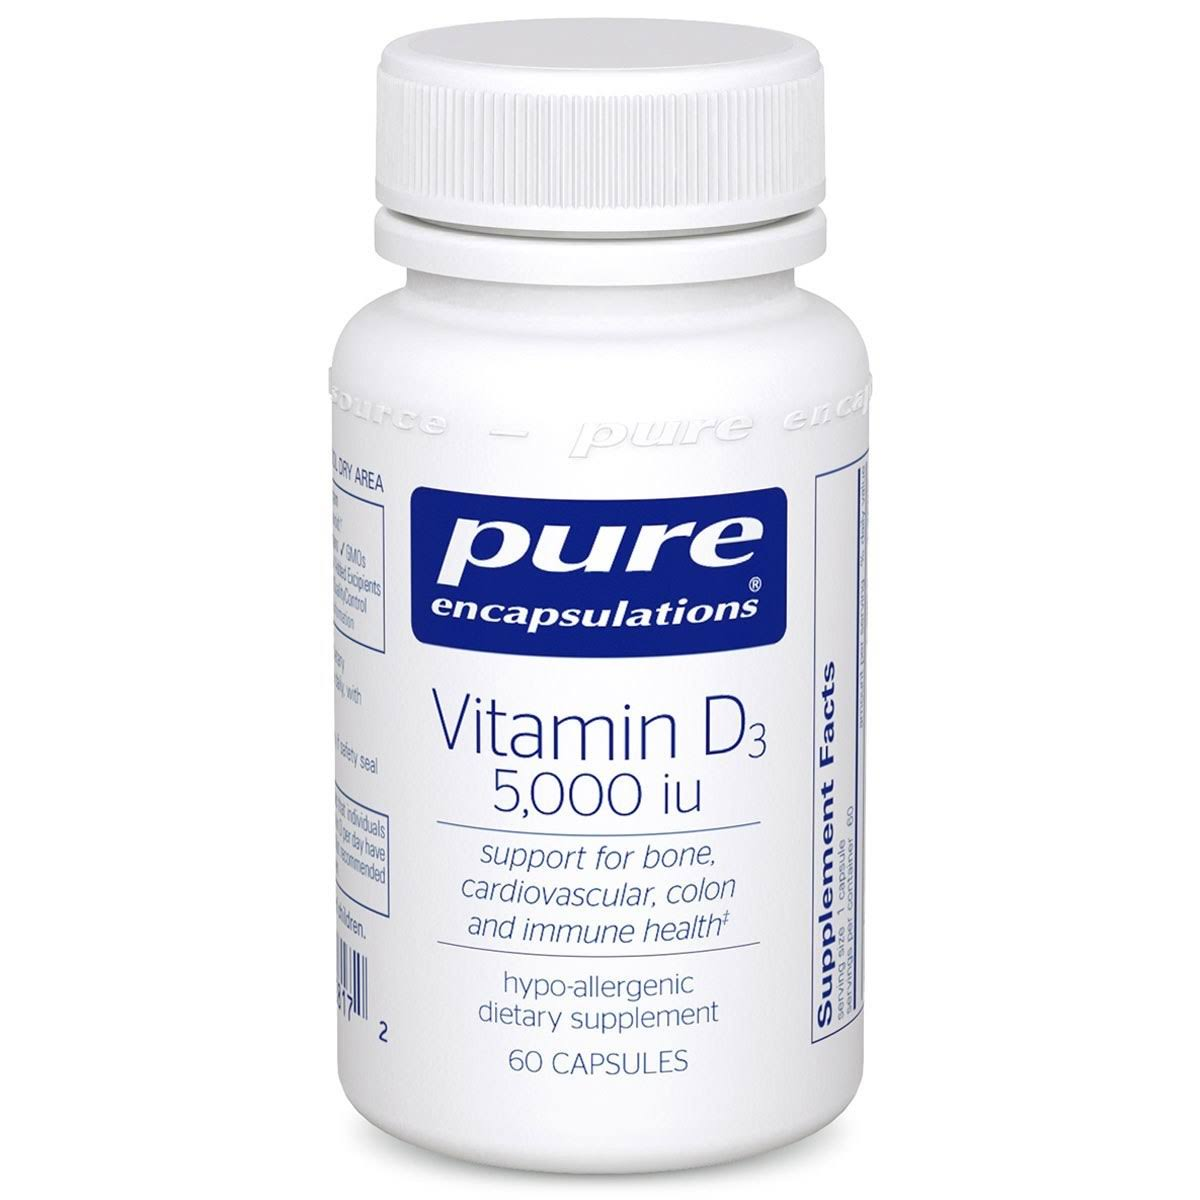 Pure Encapsulations Vitamin D3 Dietary Supplement - 60 Capsules, 5,000 IU